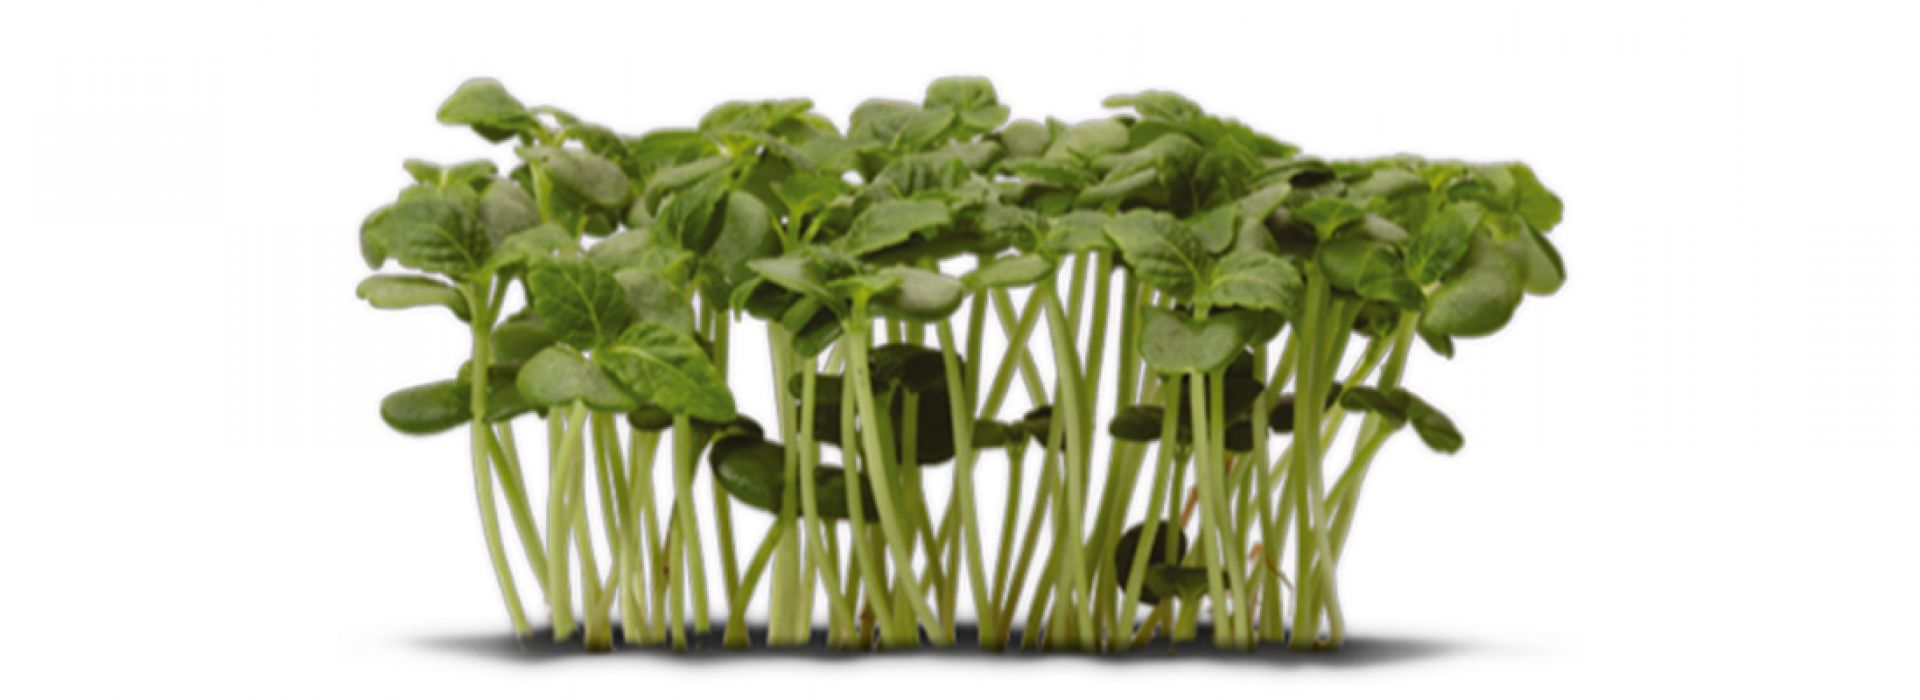 Borage Cress